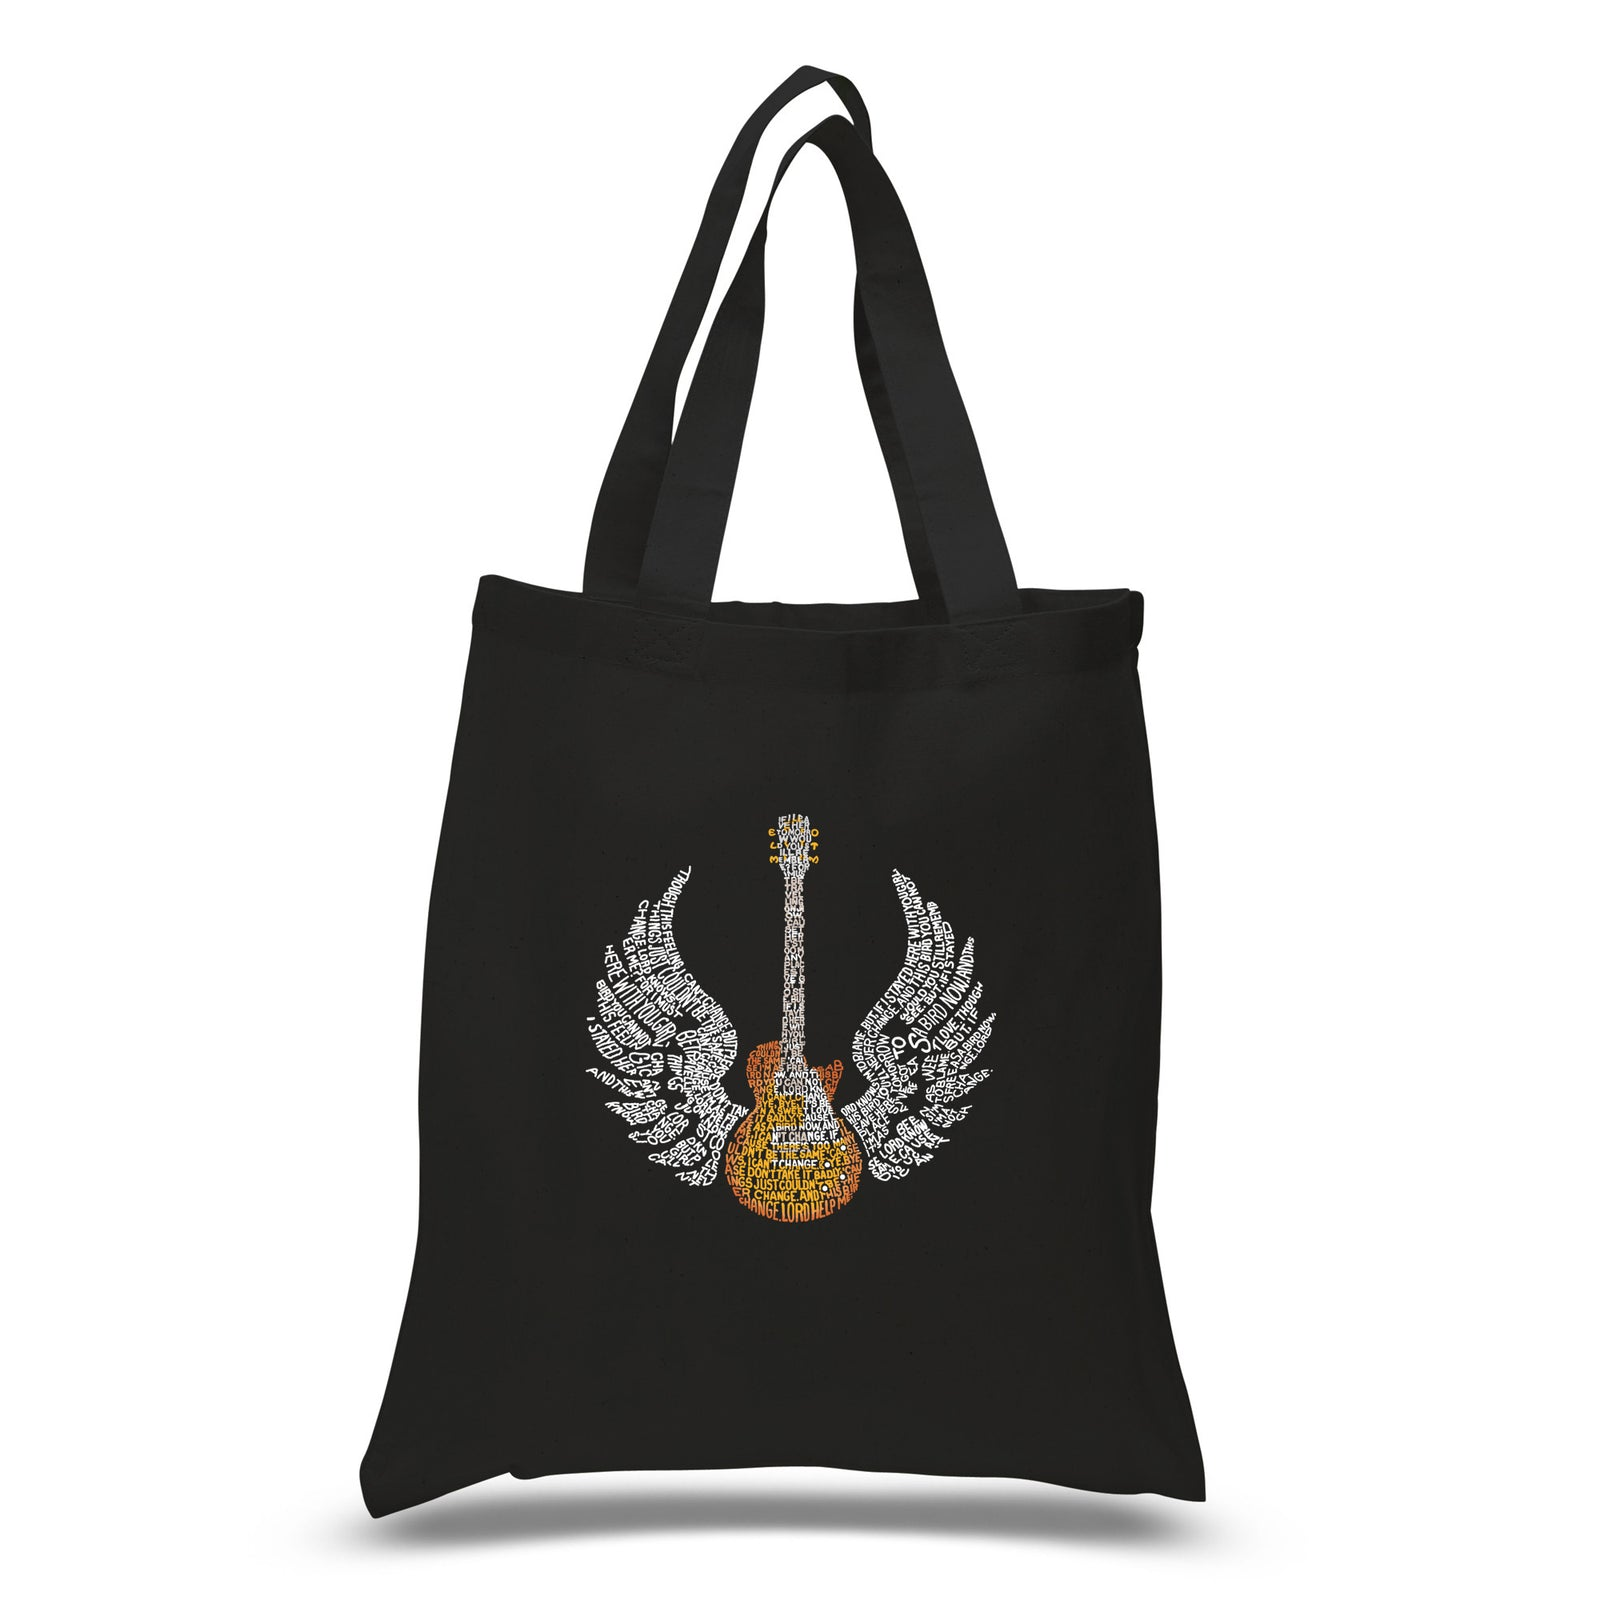 Small Tote Bag - LYRICS TO FREE BIRD